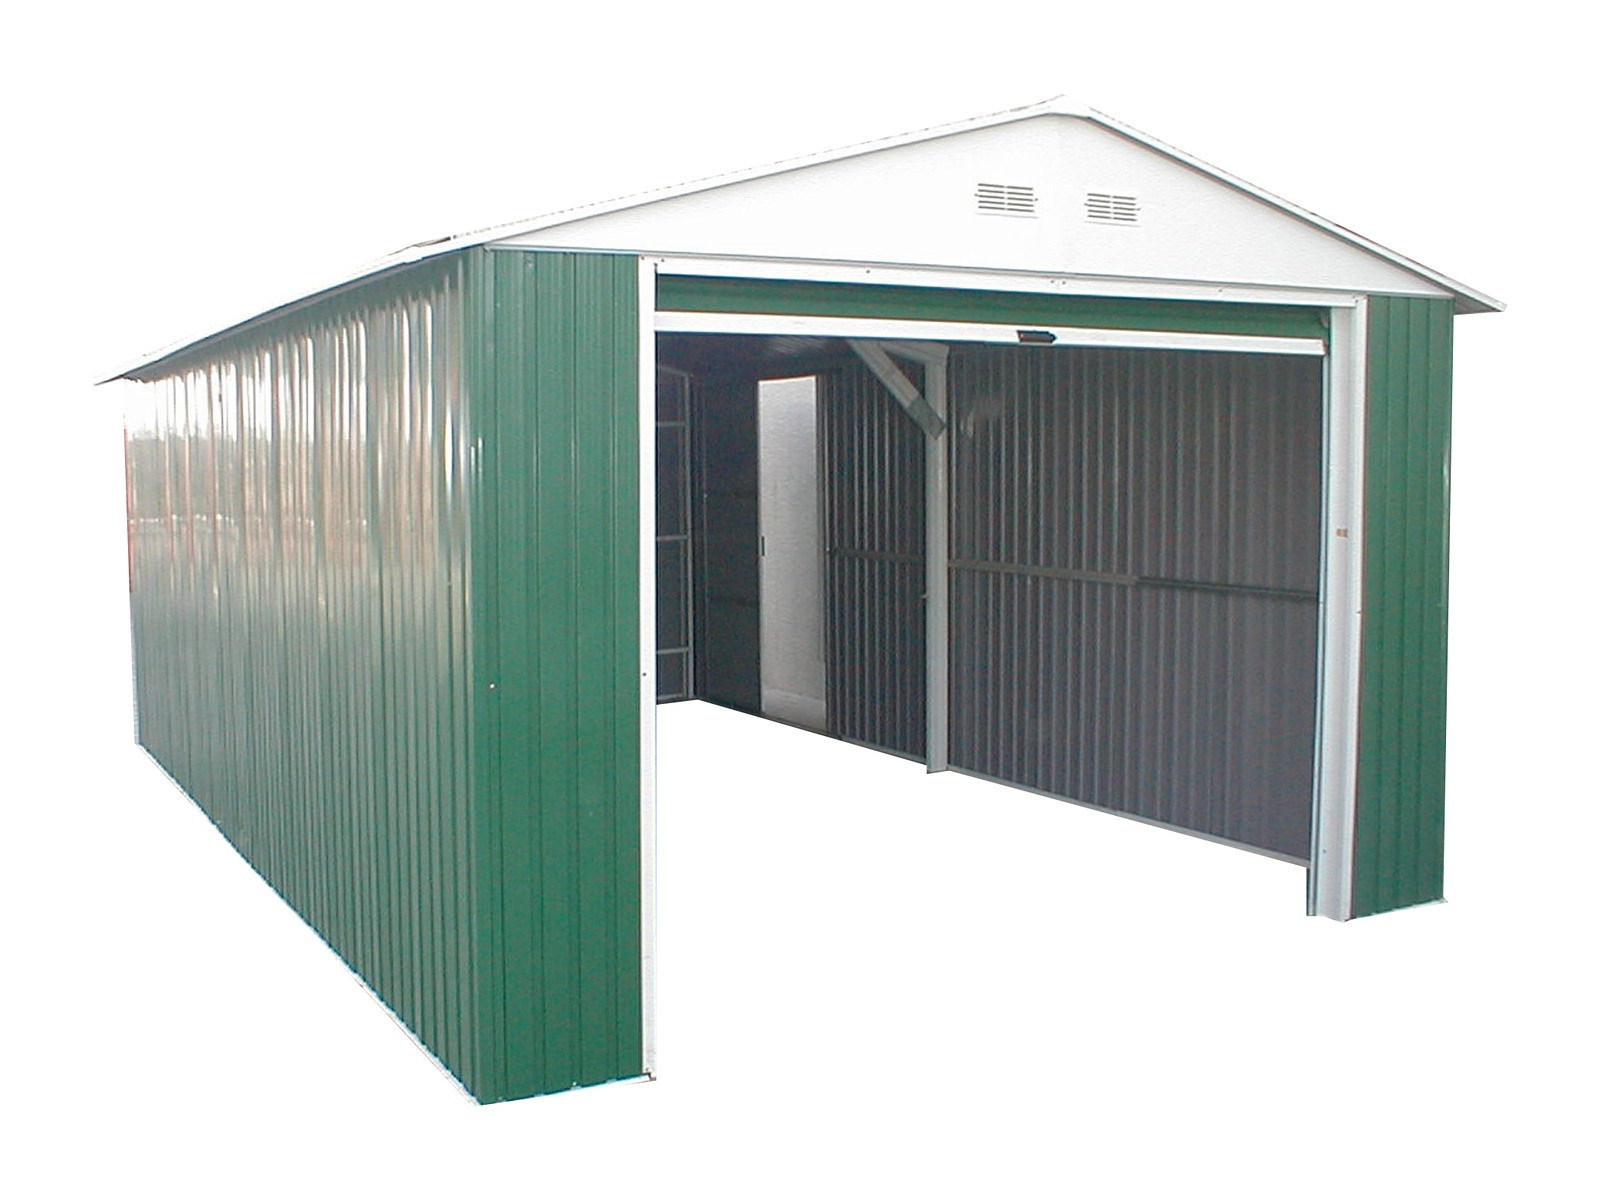 duramax shed sheds sidemate stronglasting foundation vinyl